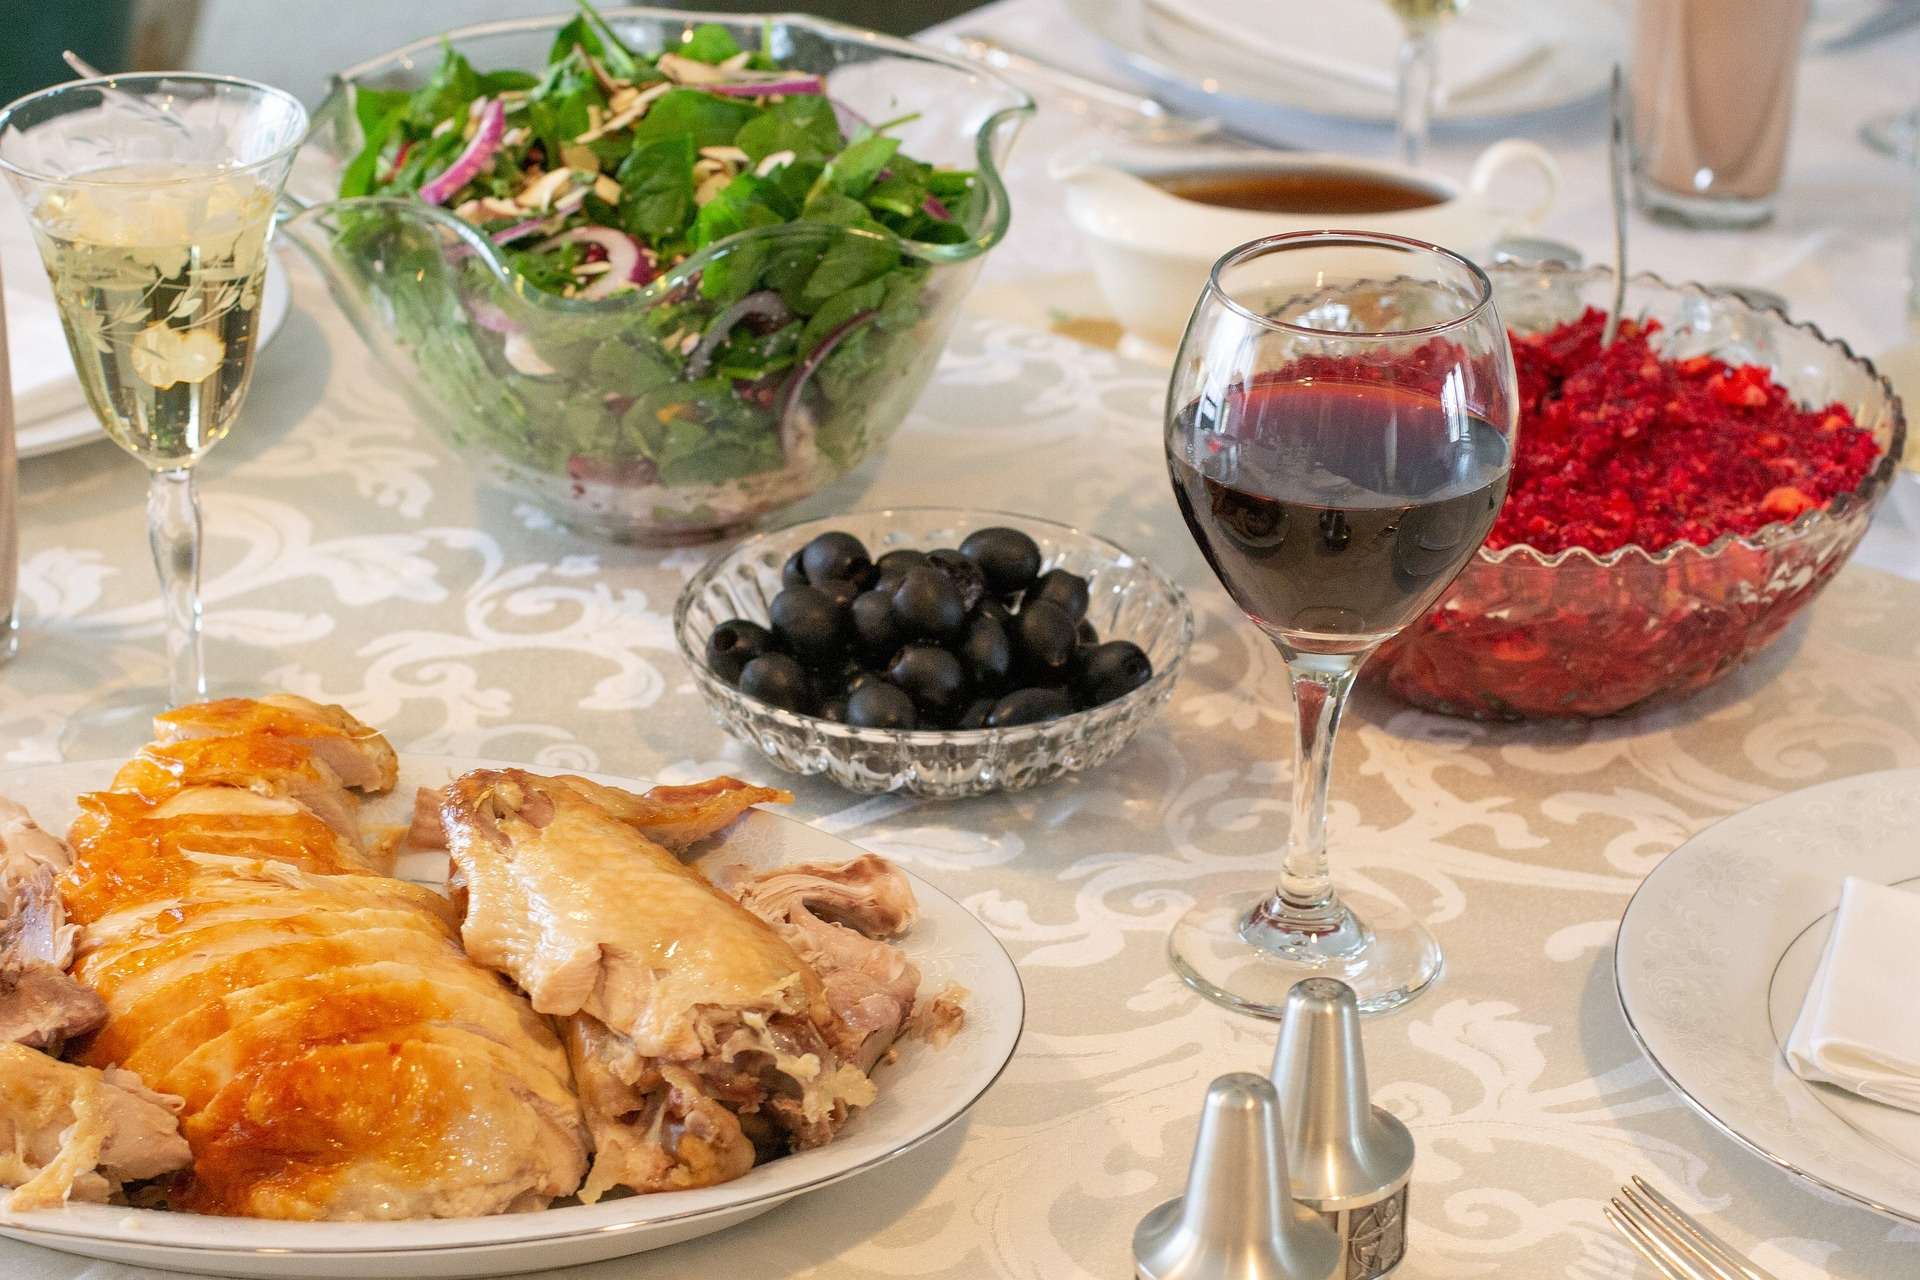 Best Wines To Go With Turkey